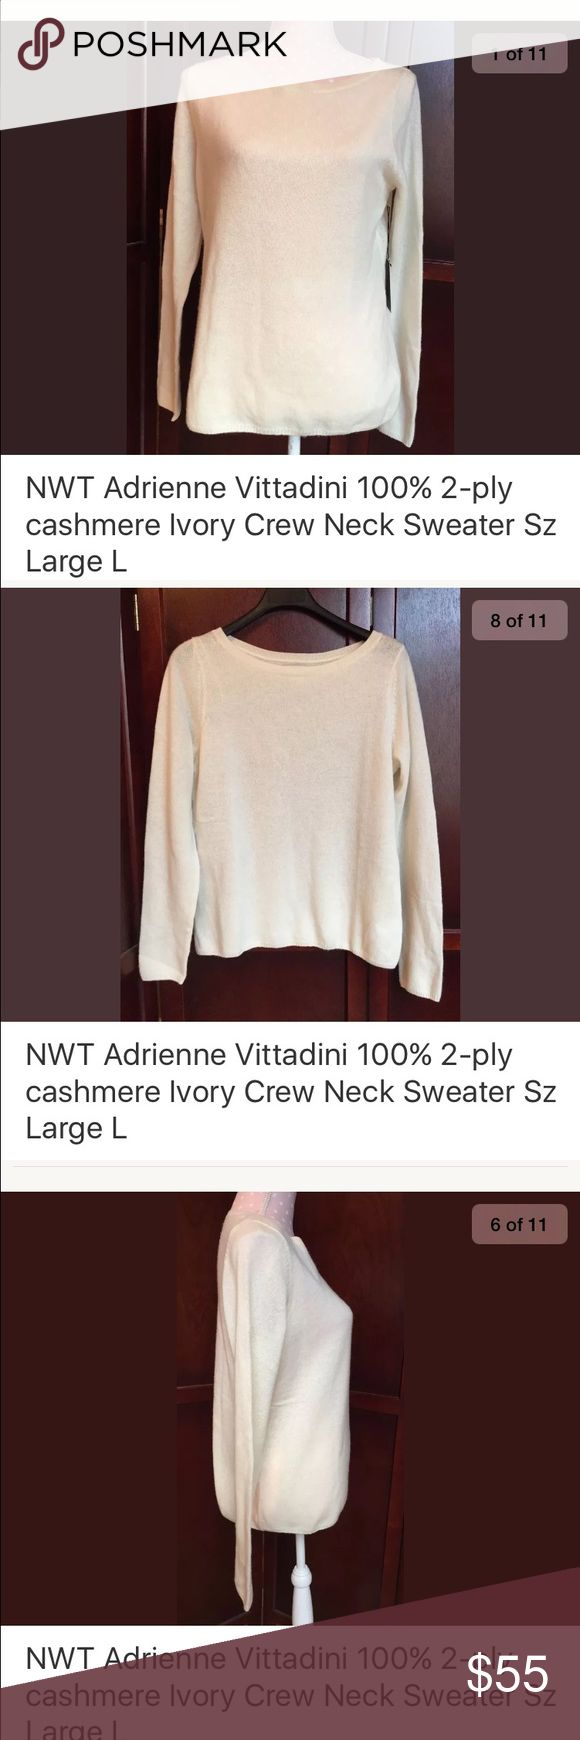 100% 2ply cashmere cream long sleeve top sz large 100% 2-Ply cashmere sweater, ivory/cream, long sleeve, thin sweater, crew neck Condition: NWT Measurements: womens size Large, shoulder across 15, sleeve 35, chest across 20.5, waist across 20, length 22.5 Adrienne Vittadini Sweaters Crew & Scoop Necks